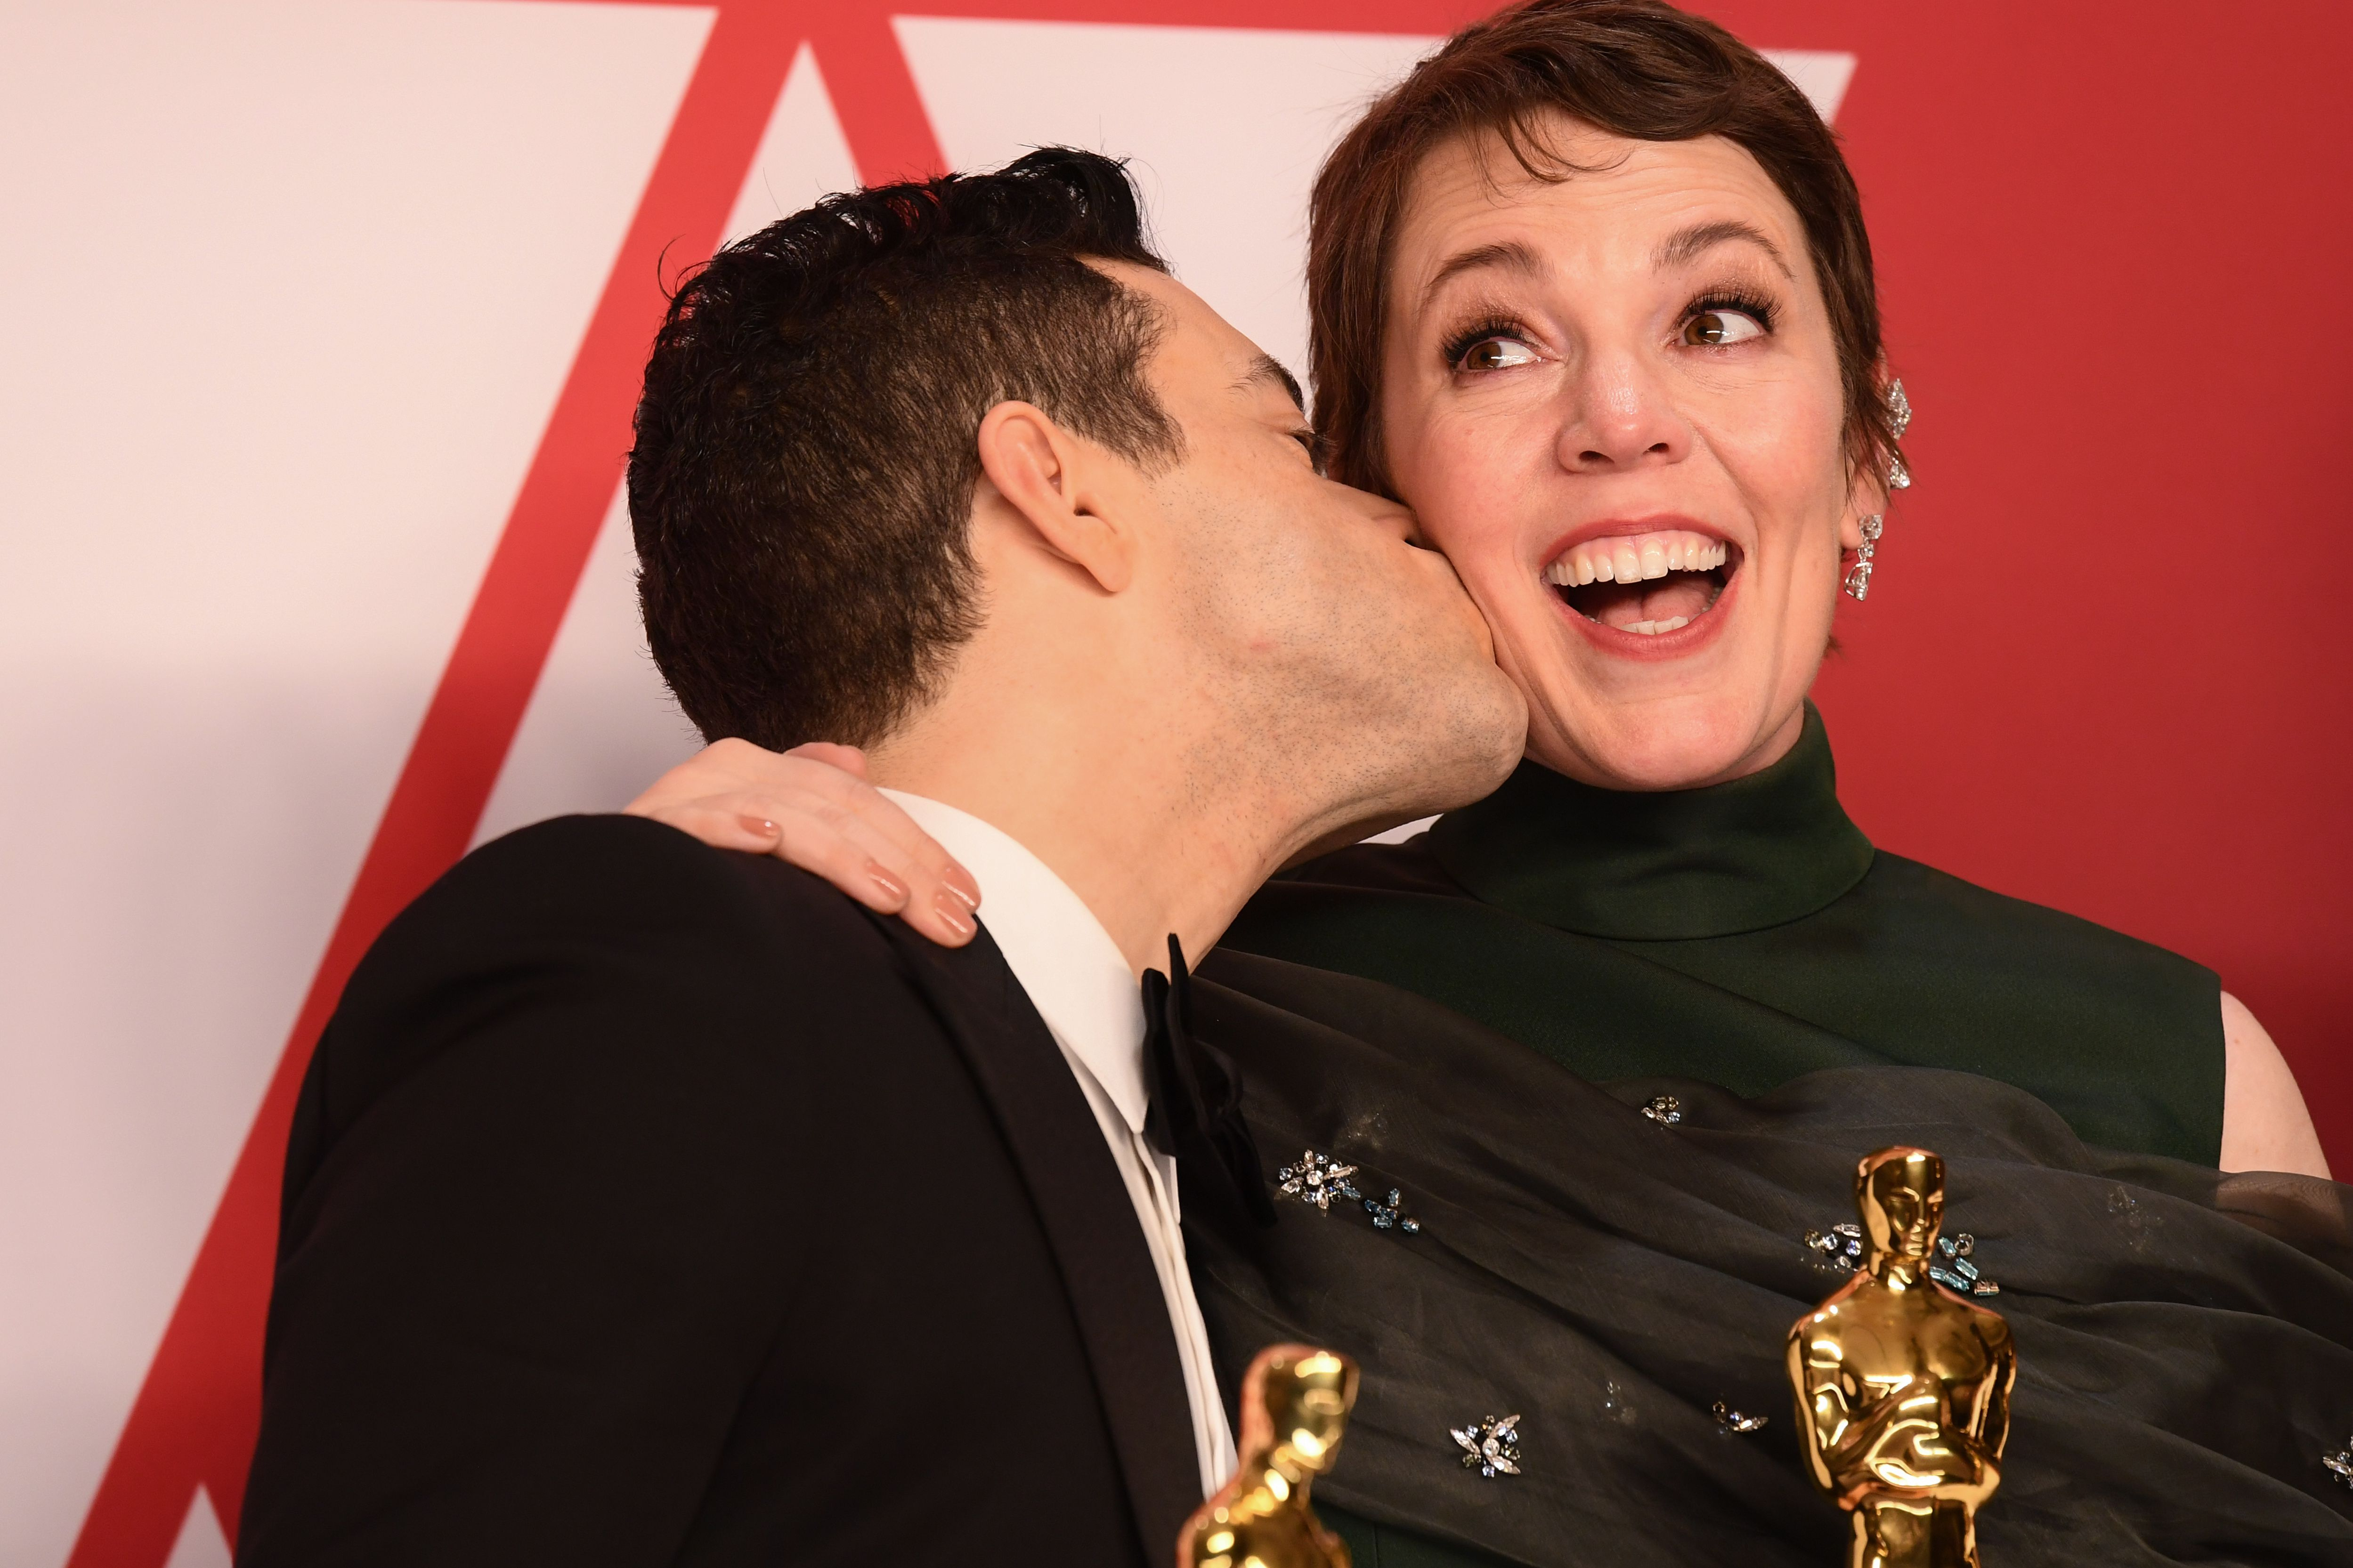 Best Actress Winner Olivia Colman Is Just as Shocked as You Are that She Won